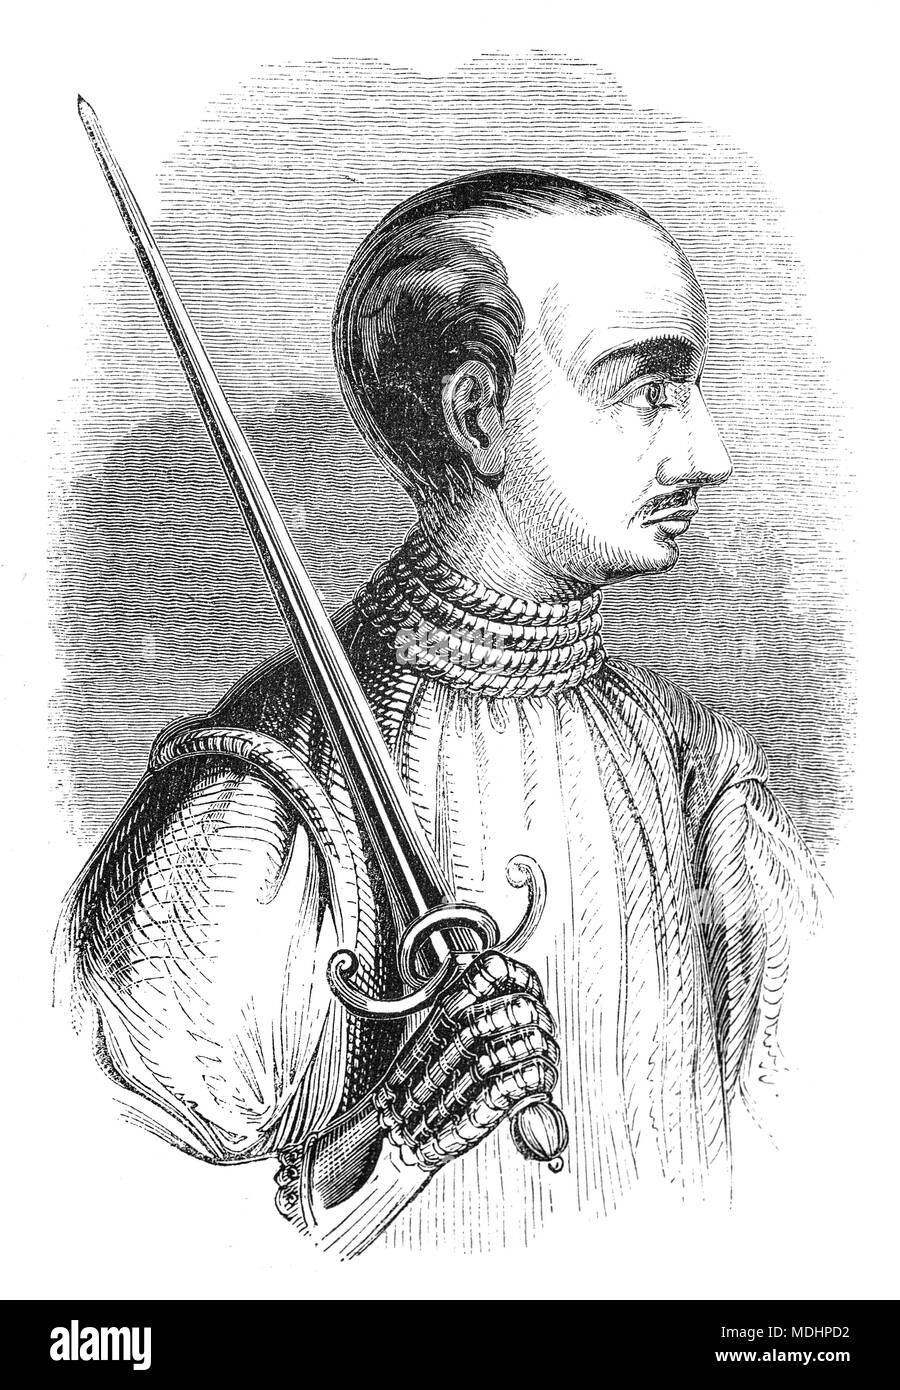 A portrait of Bertrand du Guesclin (1320 – 1380), nicknamed 'The Eagle of Brittany' or 'The Black Dog of Brocéliande', was a Breton knight and French military commander during the Hundred Years' War. He was Constable of France from 1370 to his death. Well known for his Fabian strategy, he took part in six pitched battles and won the four in which he held command. - Stock Image